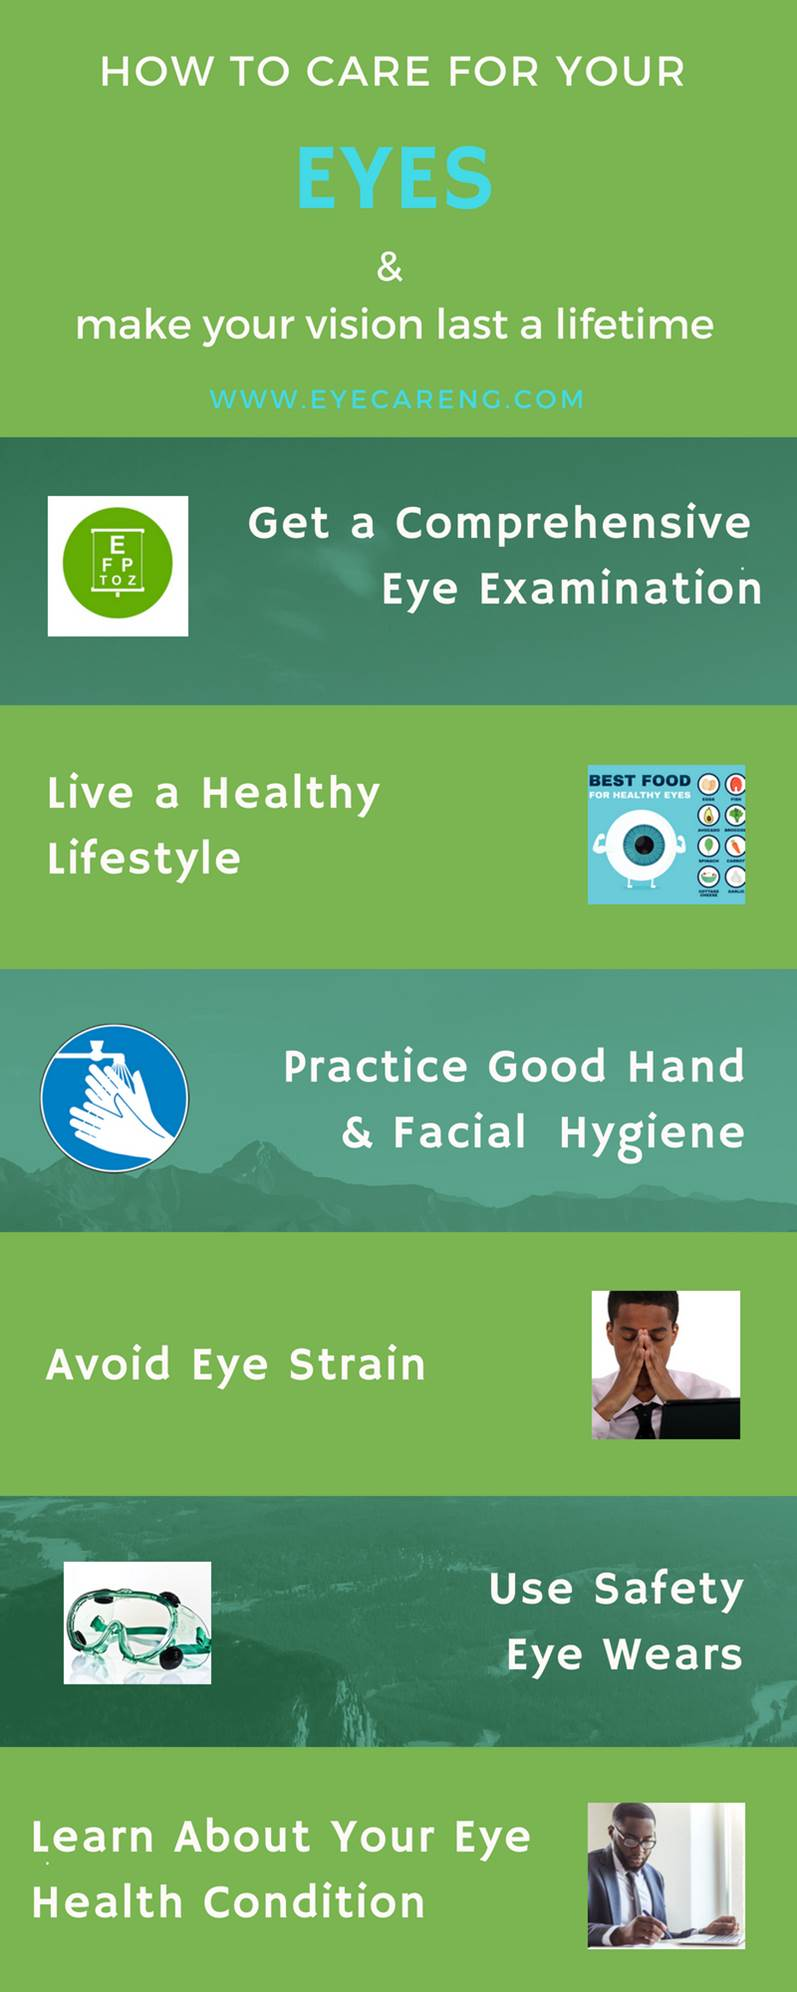 How to care for your eyes and make your vision last a lifetime